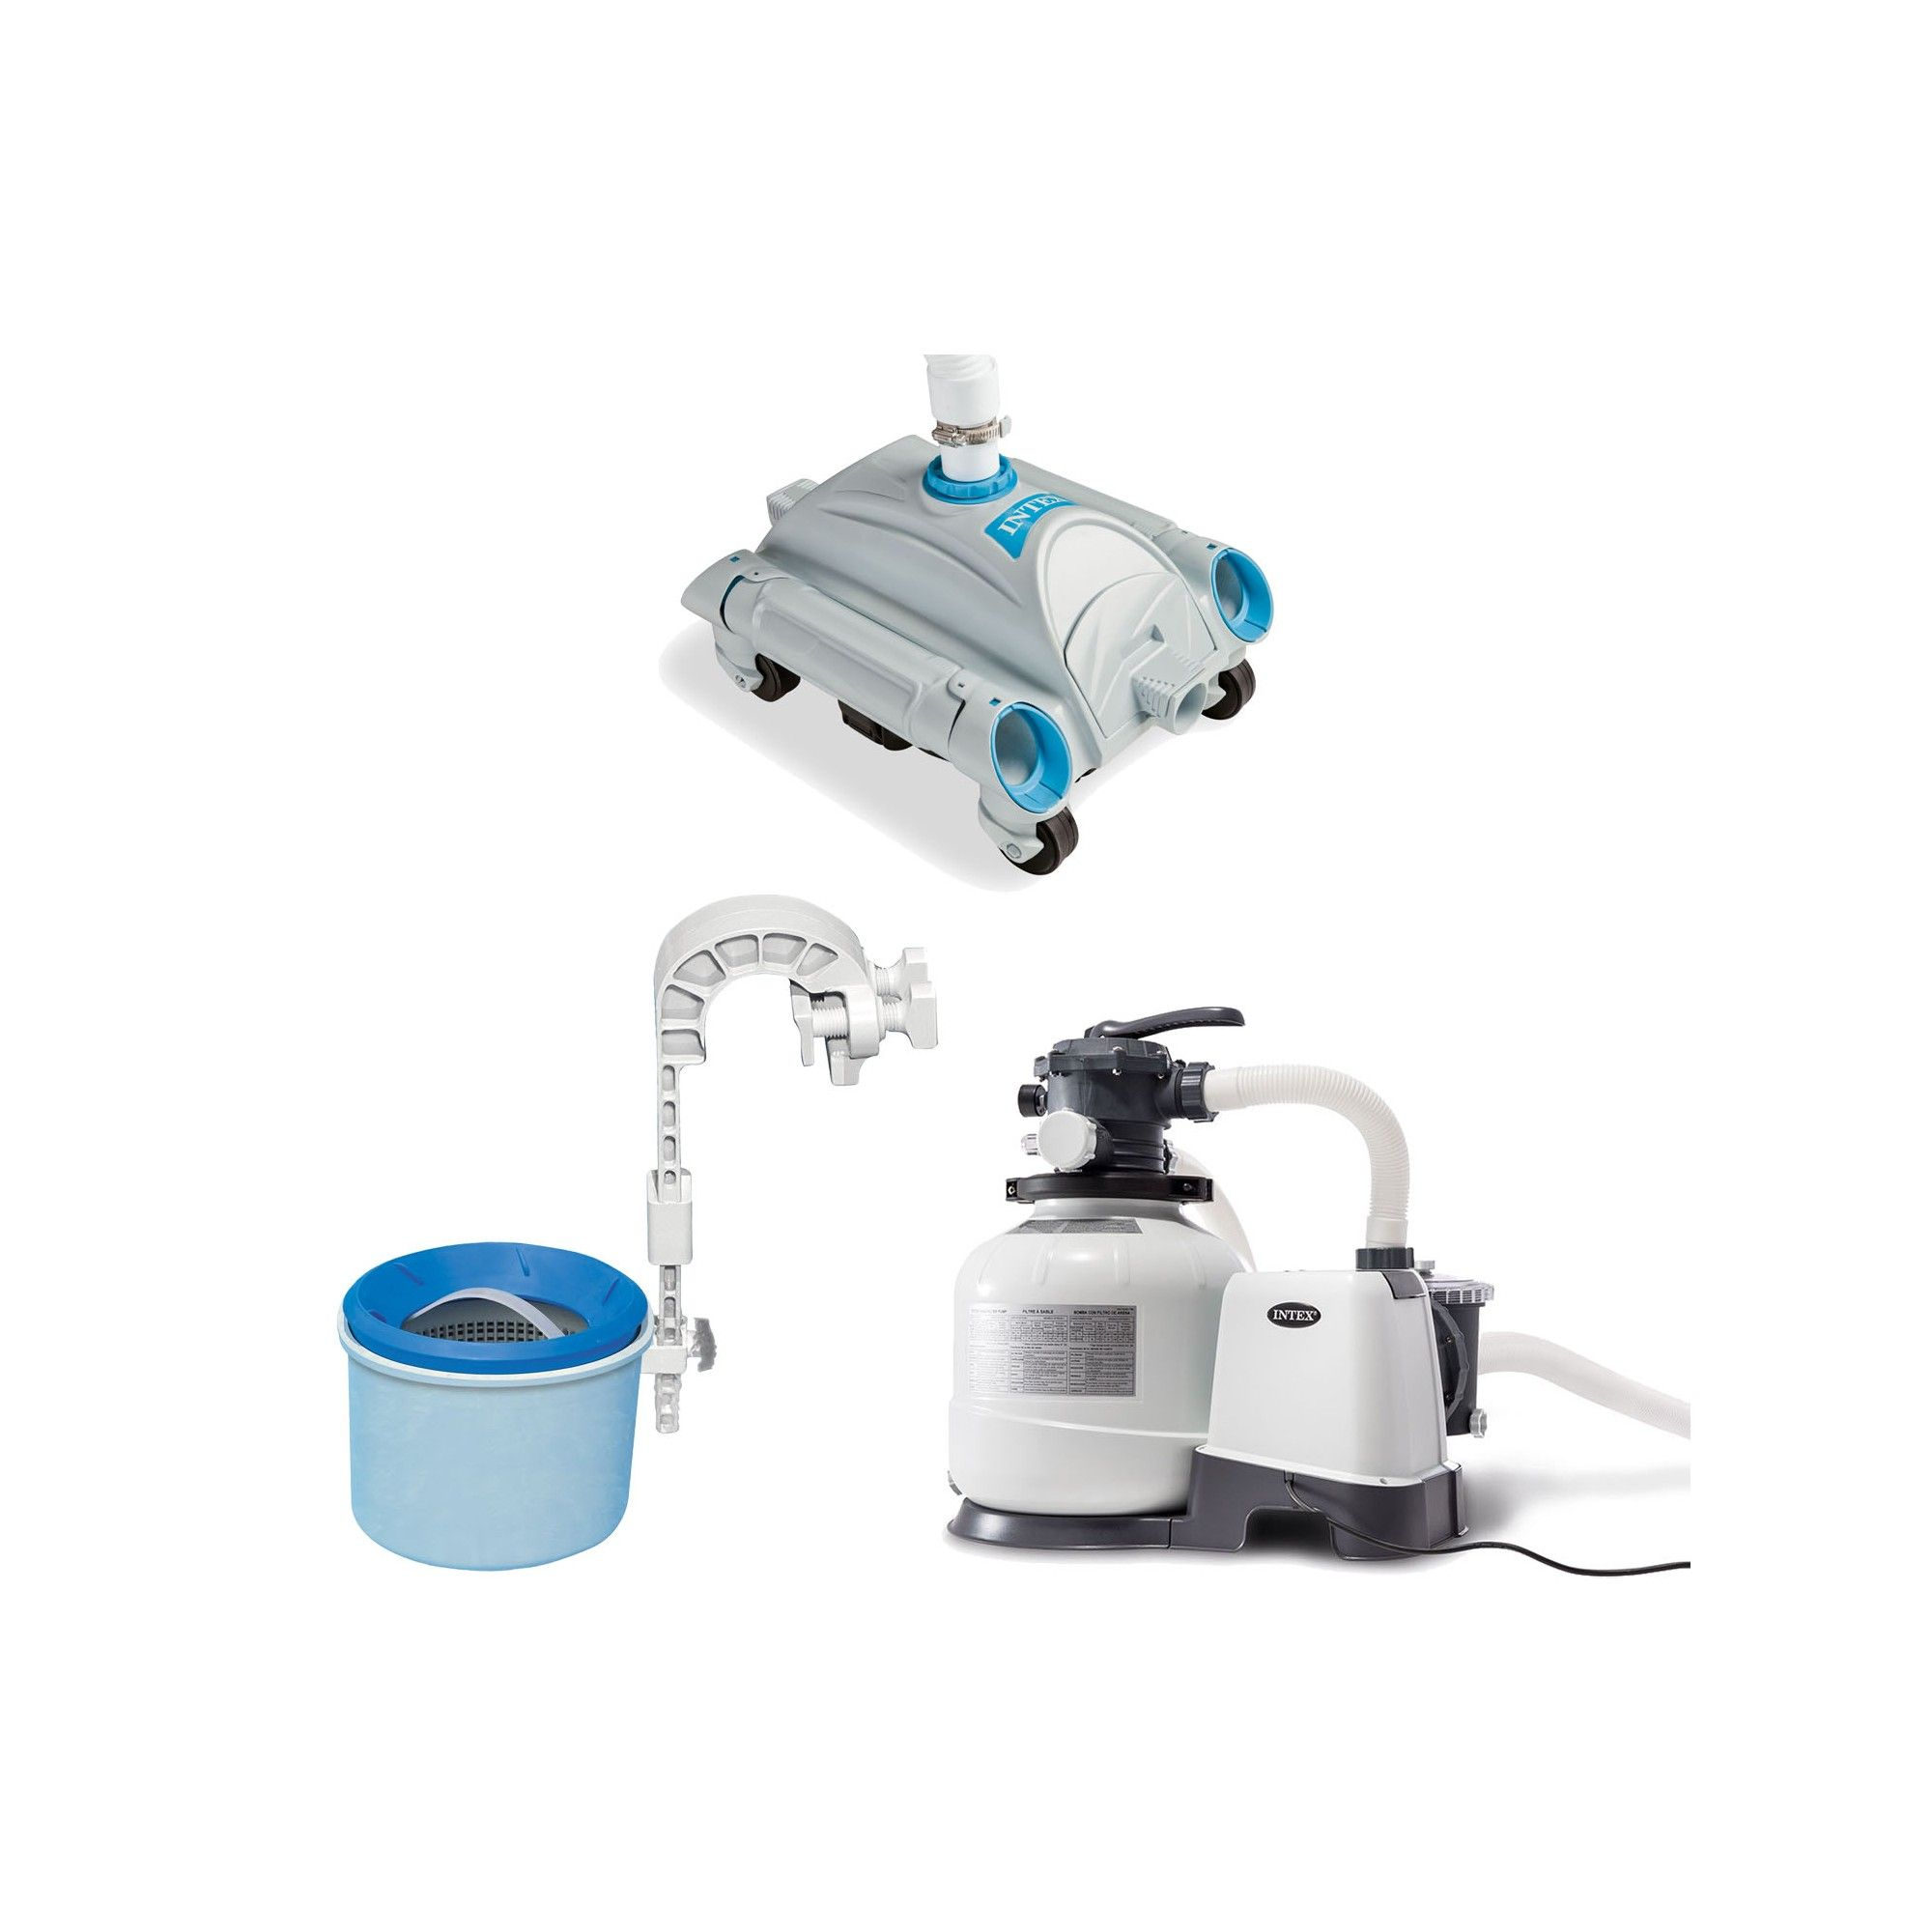 Intex Pool Sand Filter Pump with Pool Vacuum and Wall